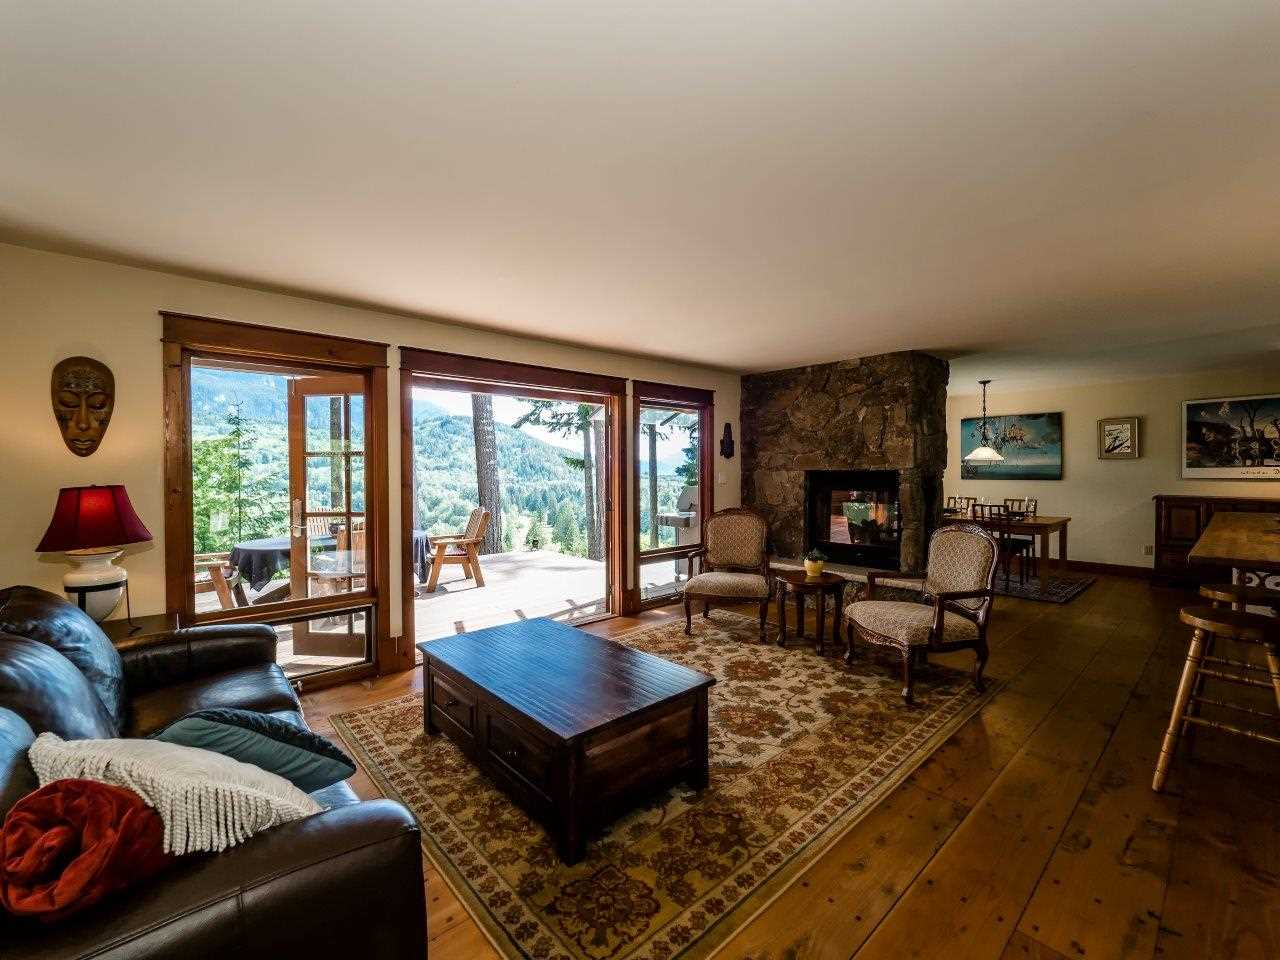 "Photo 8: 40218 KINTYRE Drive in Squamish: Garibaldi Highlands House for sale in ""GARIBALDI HIGHLANDS, KINTYRE BENCH"" : MLS(r) # R2081825"